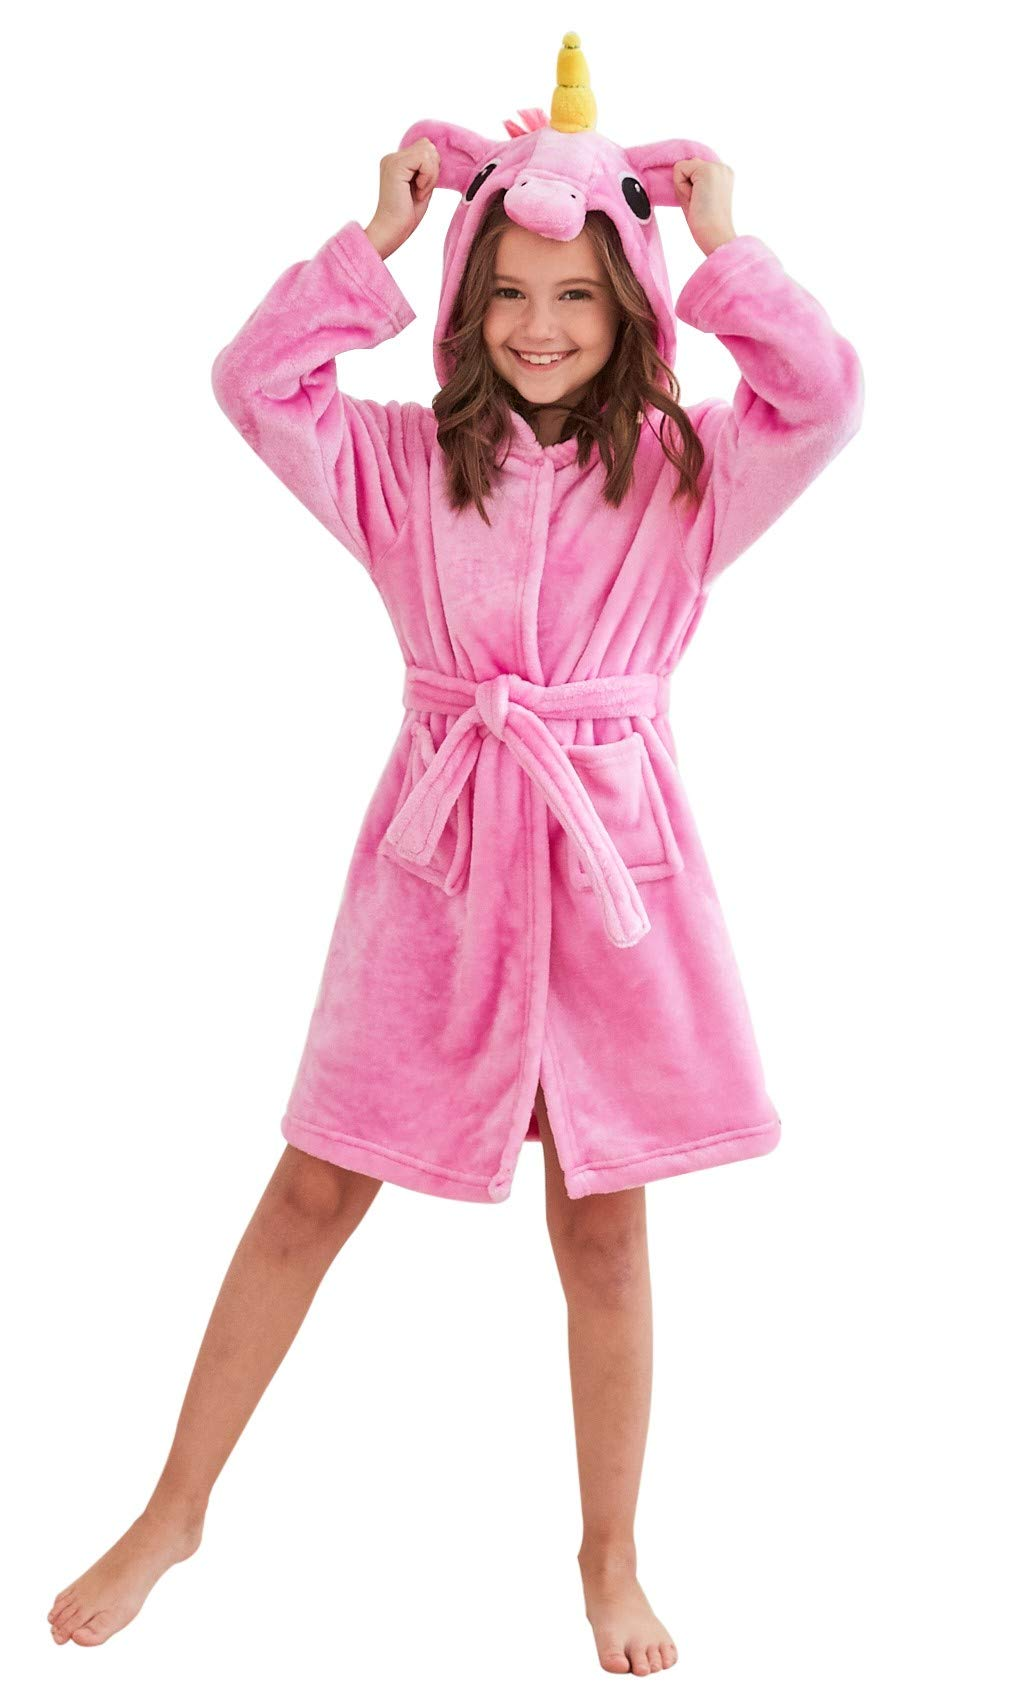 Soft Unicorn Hooded Bathrobe Sleepwear - Unicorn Gifts for Girls (7-9 Years, Pink Sleepwear)